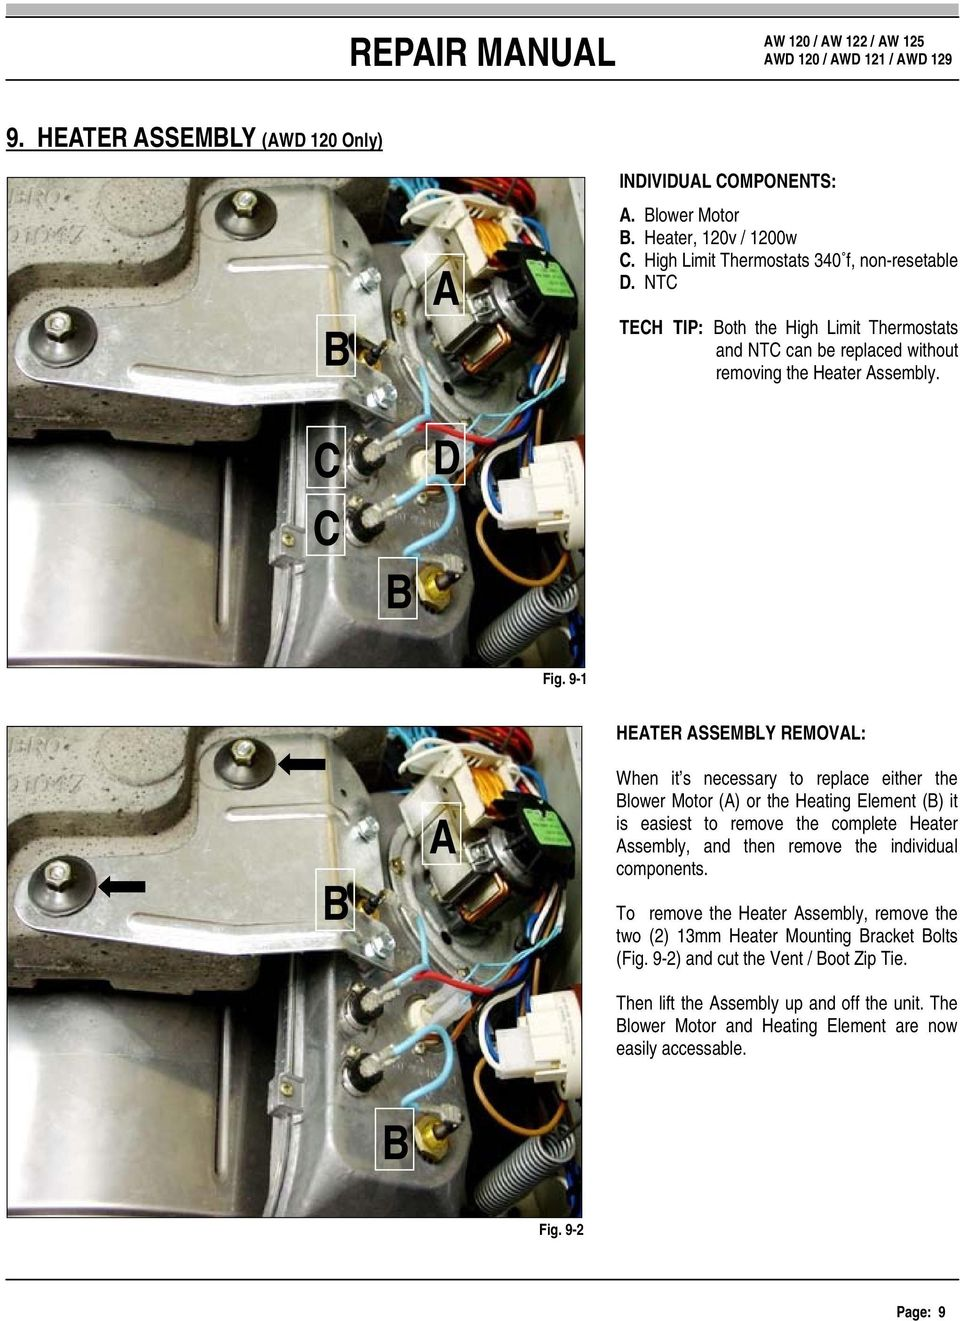 9-1 B A HEATER ASSEMBLY REMOVAL: When it s necessary to replace either the Blower Motor (A) or the Heating Element (B) it is easiest to remove the complete Heater Assembly, and then